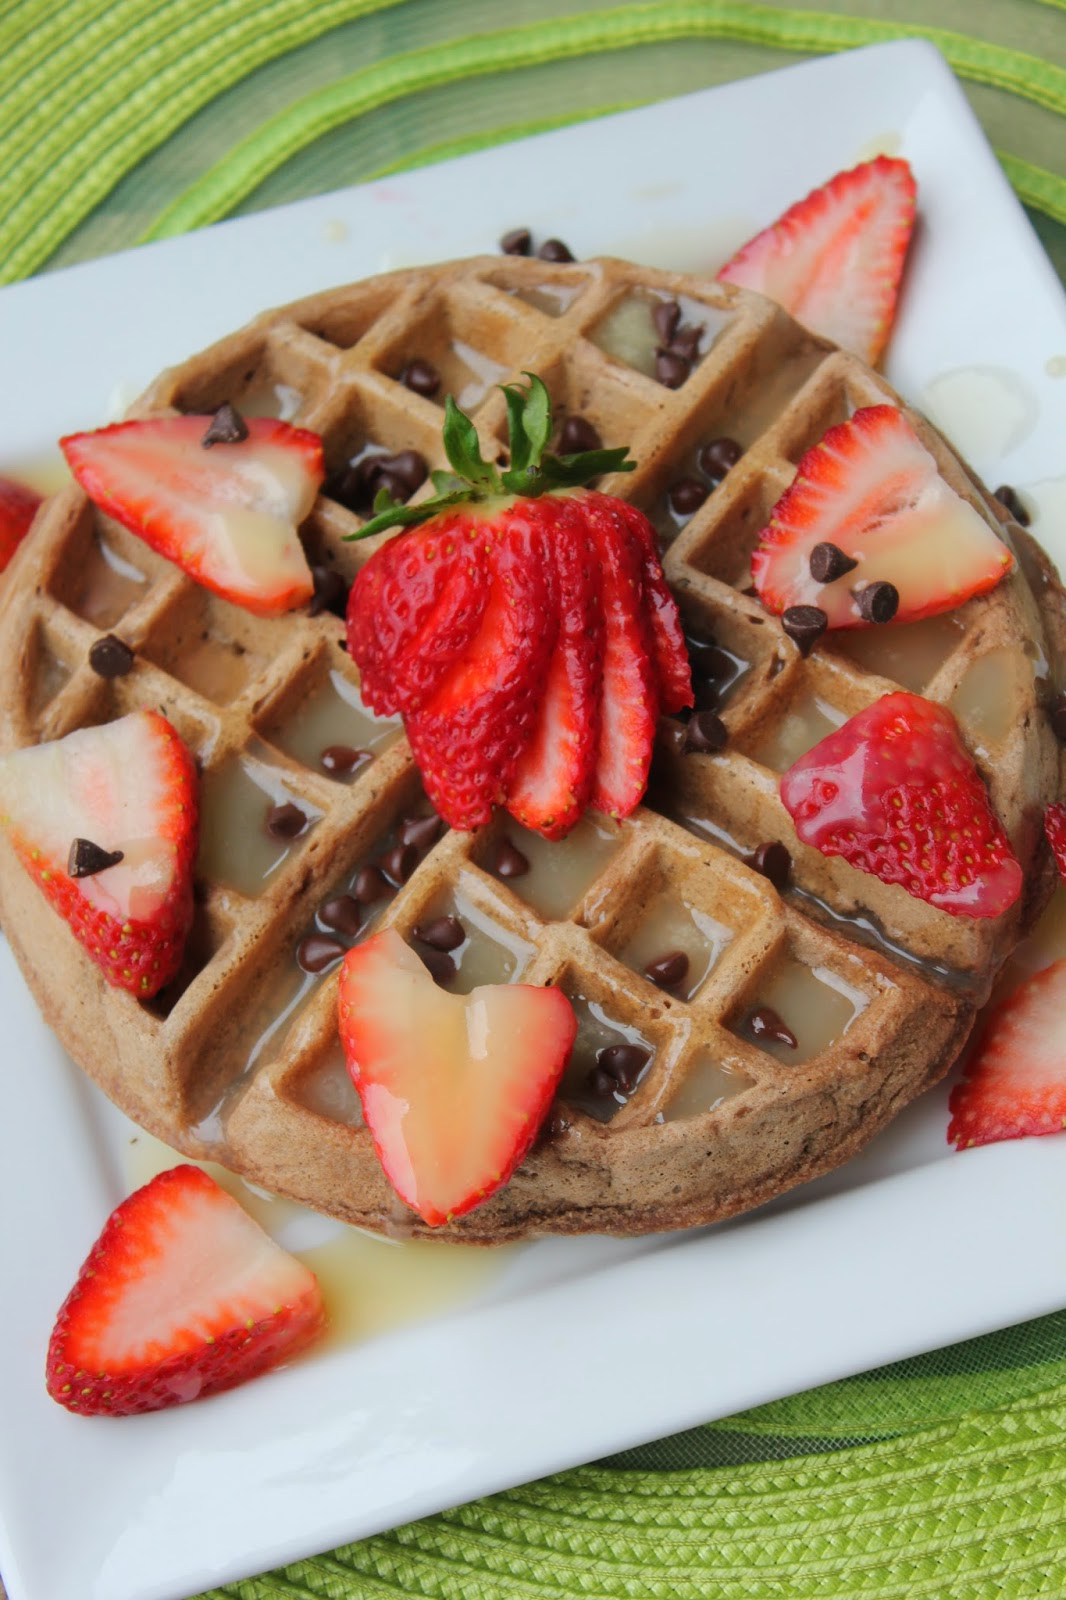 Recipe:  Breakfast, Recipe:  Bread, chocolate waffles, double chocolate waffles, strawberries, specialty syrup, butter syrup